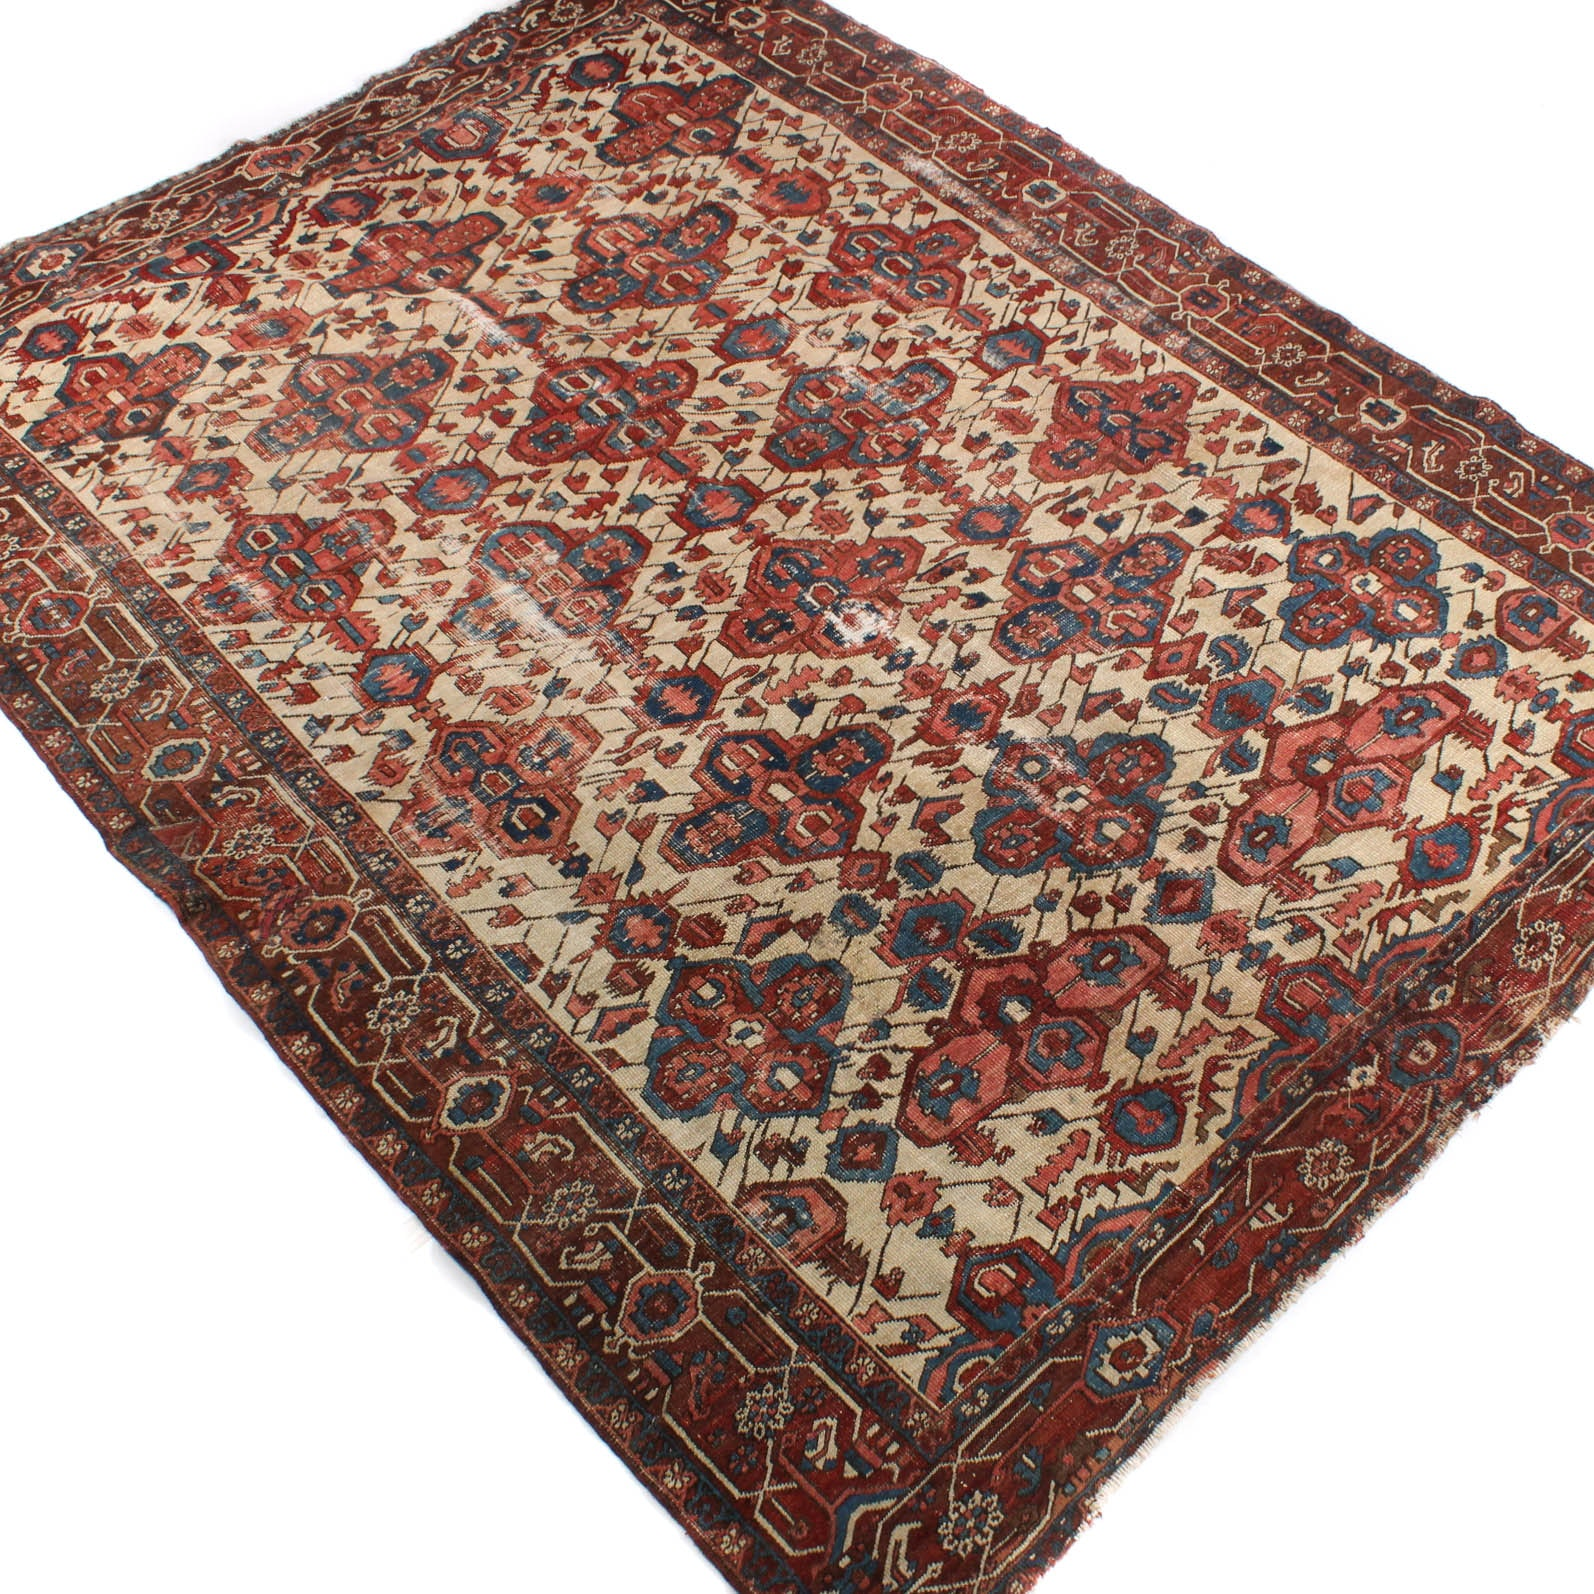 9' x 12' Antique Hand-Knotted Persian Heriz Serapi Rug